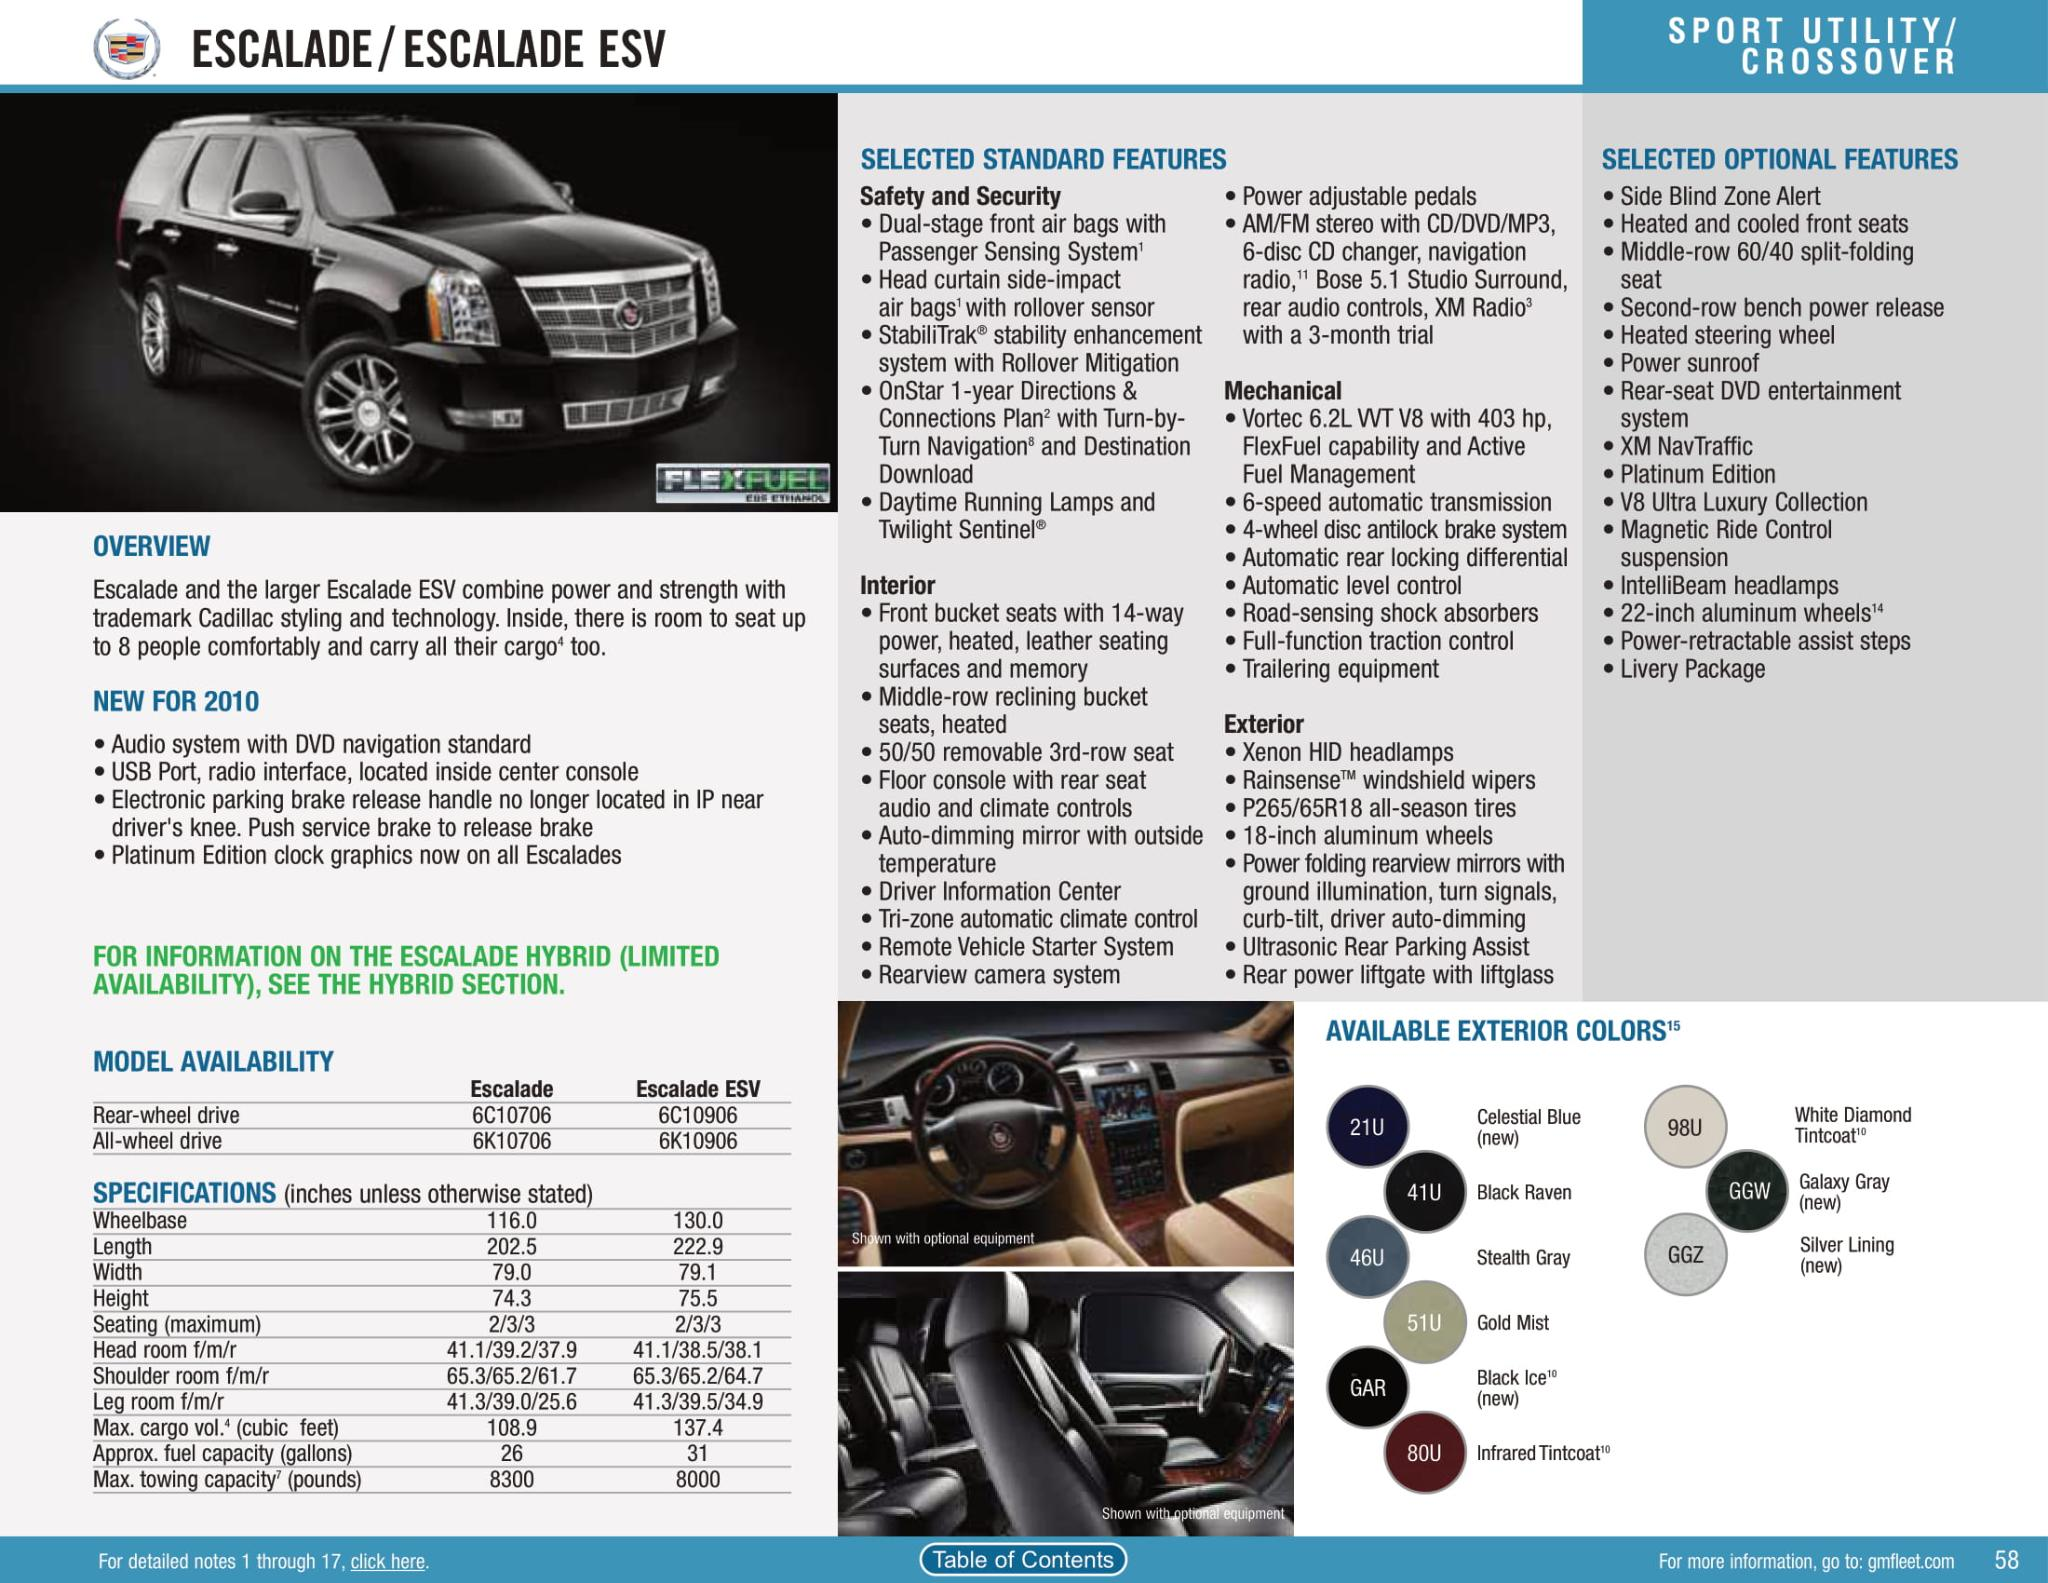 exterior colors options used on escalade in 2010